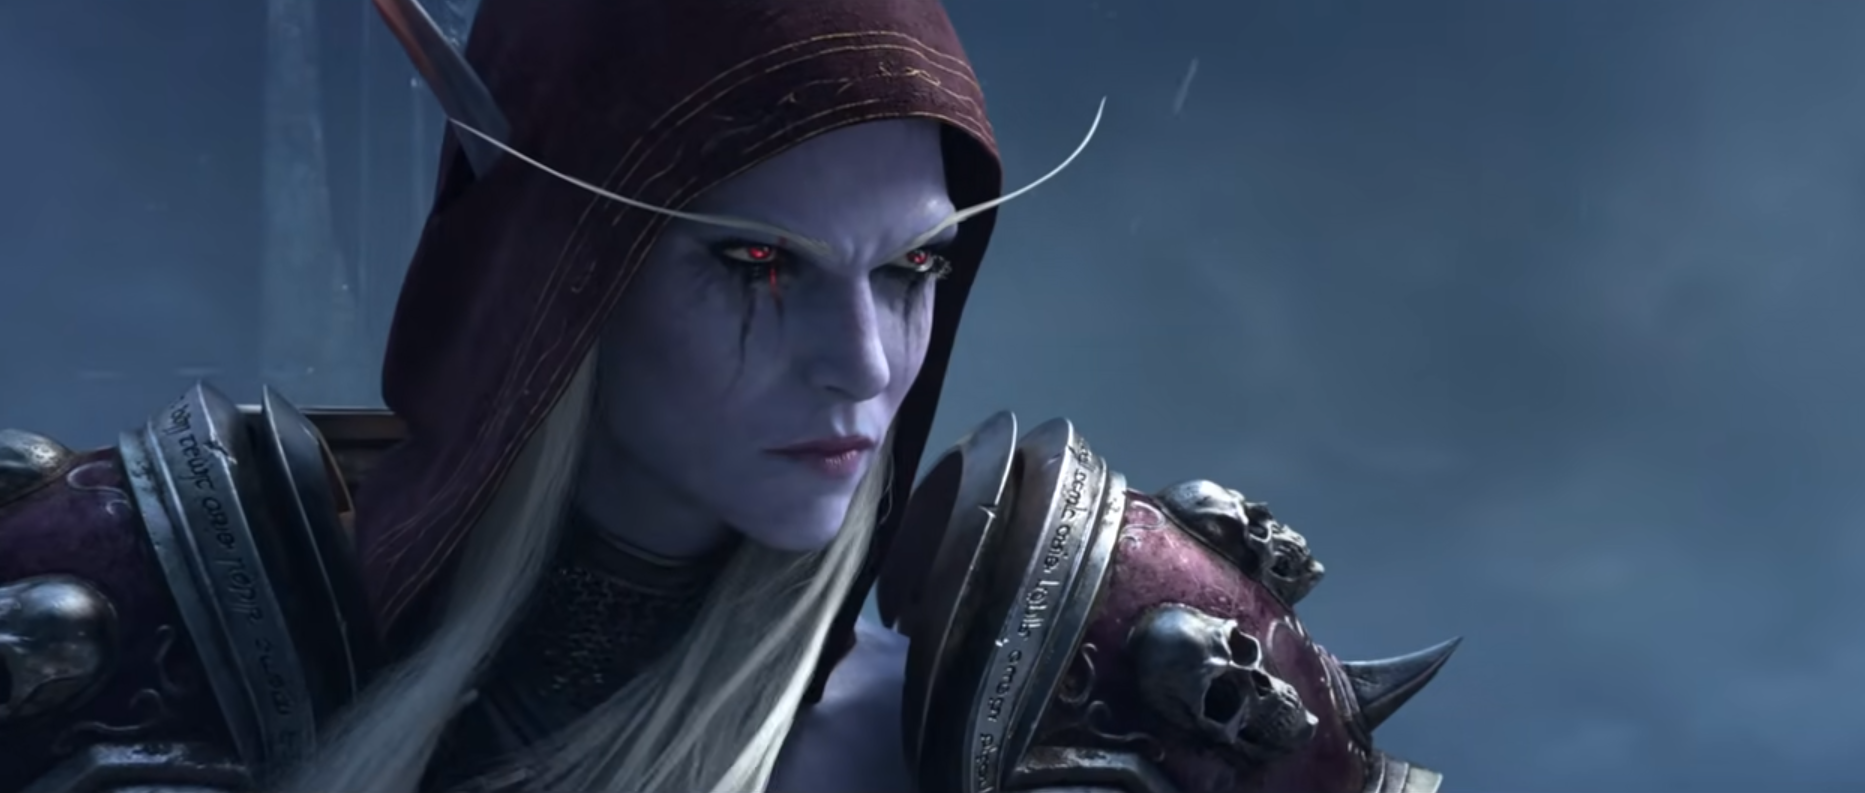 Players have already had a taste of what Shadowlands has to offer after Sylvanas and the Lich King clashed in a cinematic trailer.